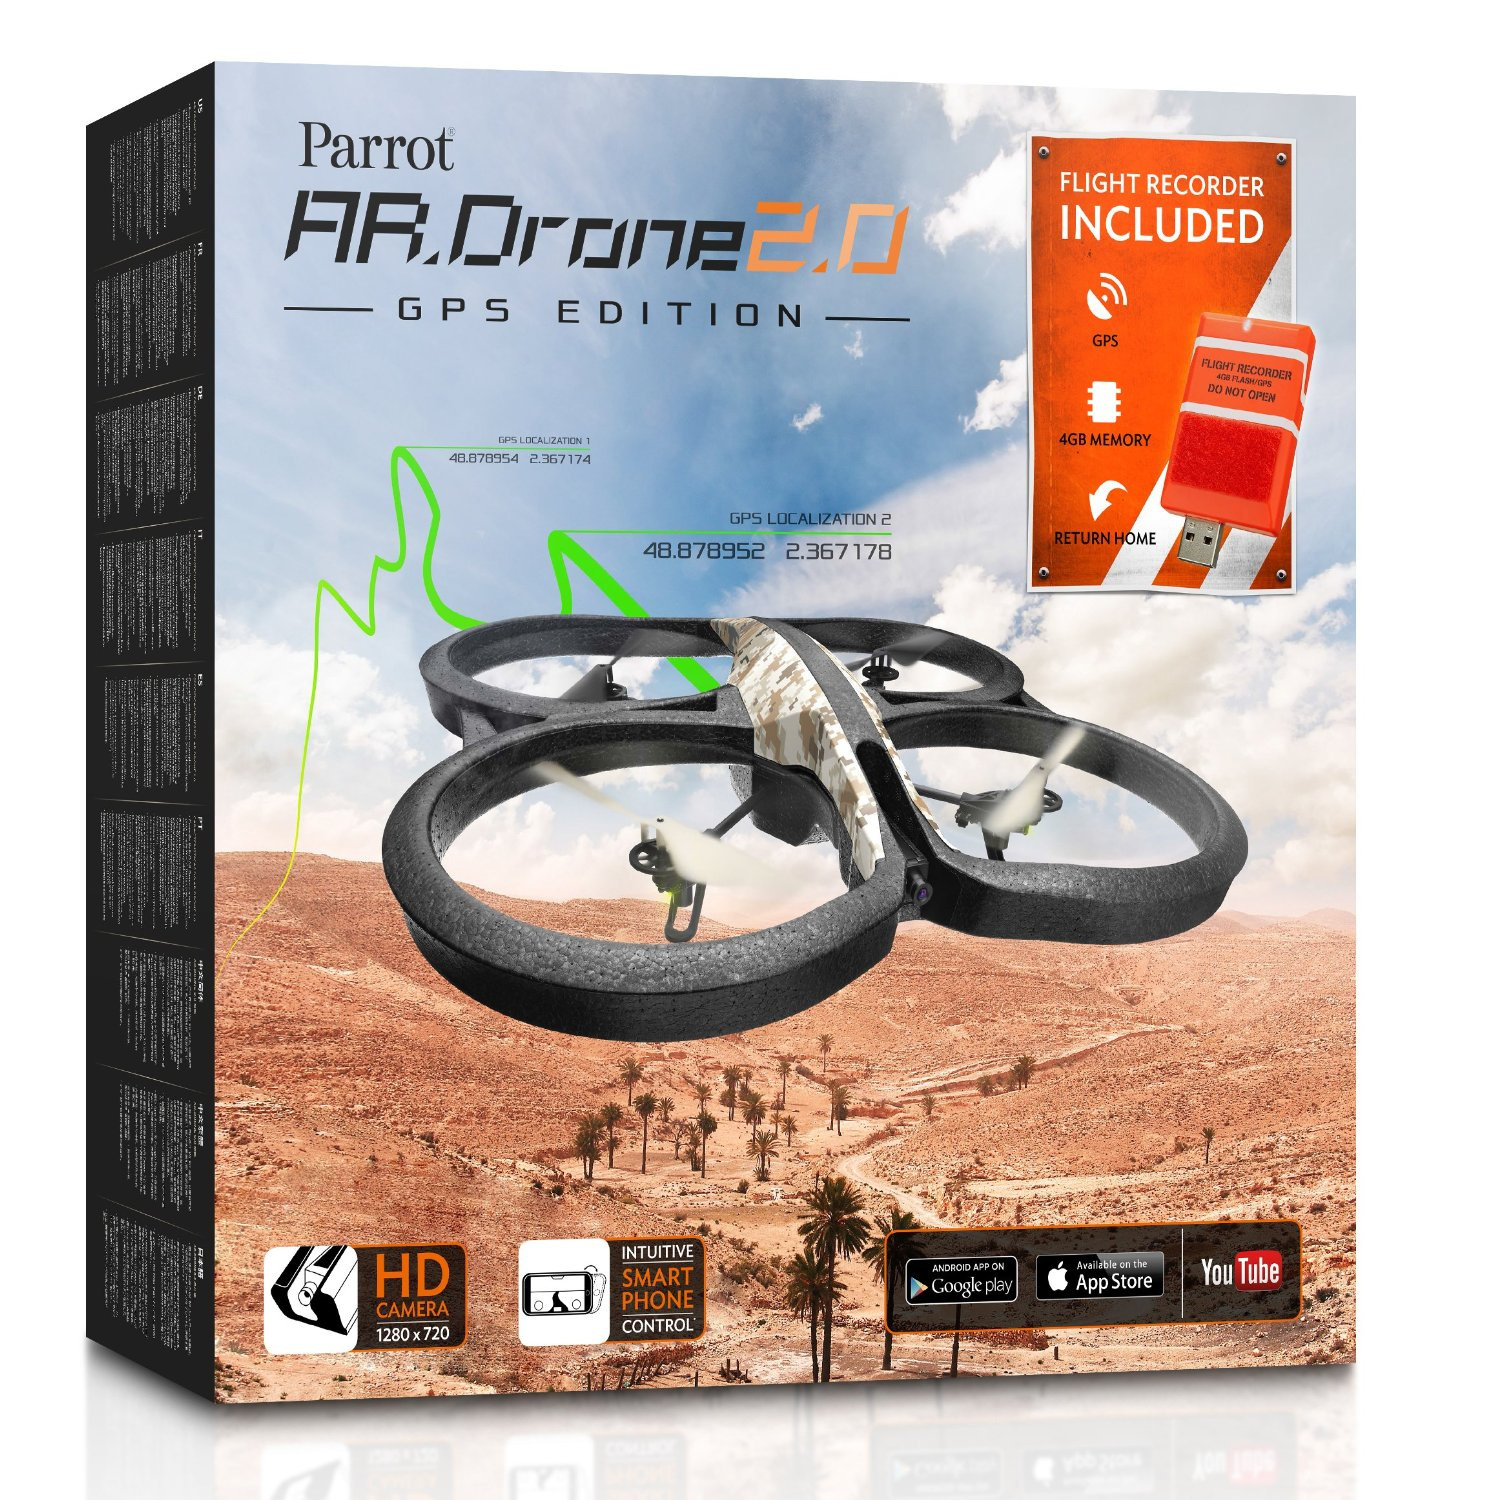 ar drone 2 0 power with Ar Drone Gps Edition Now Available on Parrot Ardrone 20 Elite Edition additionally Botas Swat Madrid 7779 further Bestpersonaldrones as well 1783541878 further Ar Drone Gps Edition Now Available.